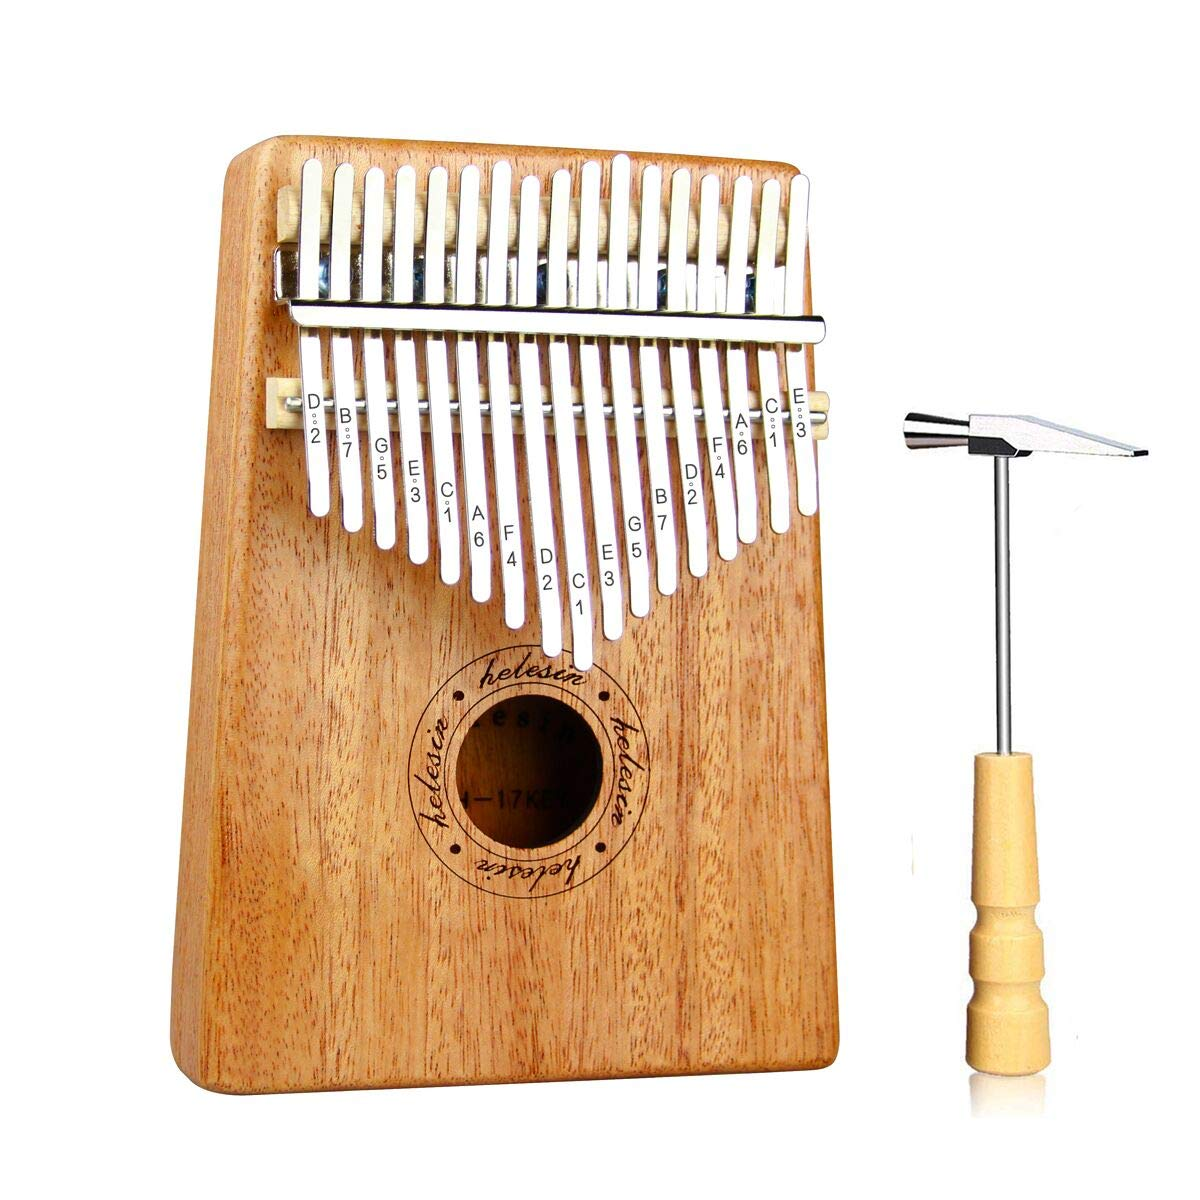 Kalimba,17 Key Kalimba Thumb Piano,Mahogany Wood Music Instrument Finger Piano with Tuning Hammer for kids Adult Beginners,Best Gifts Ideal for Friend, Family, Lover (C Tone) Mbira